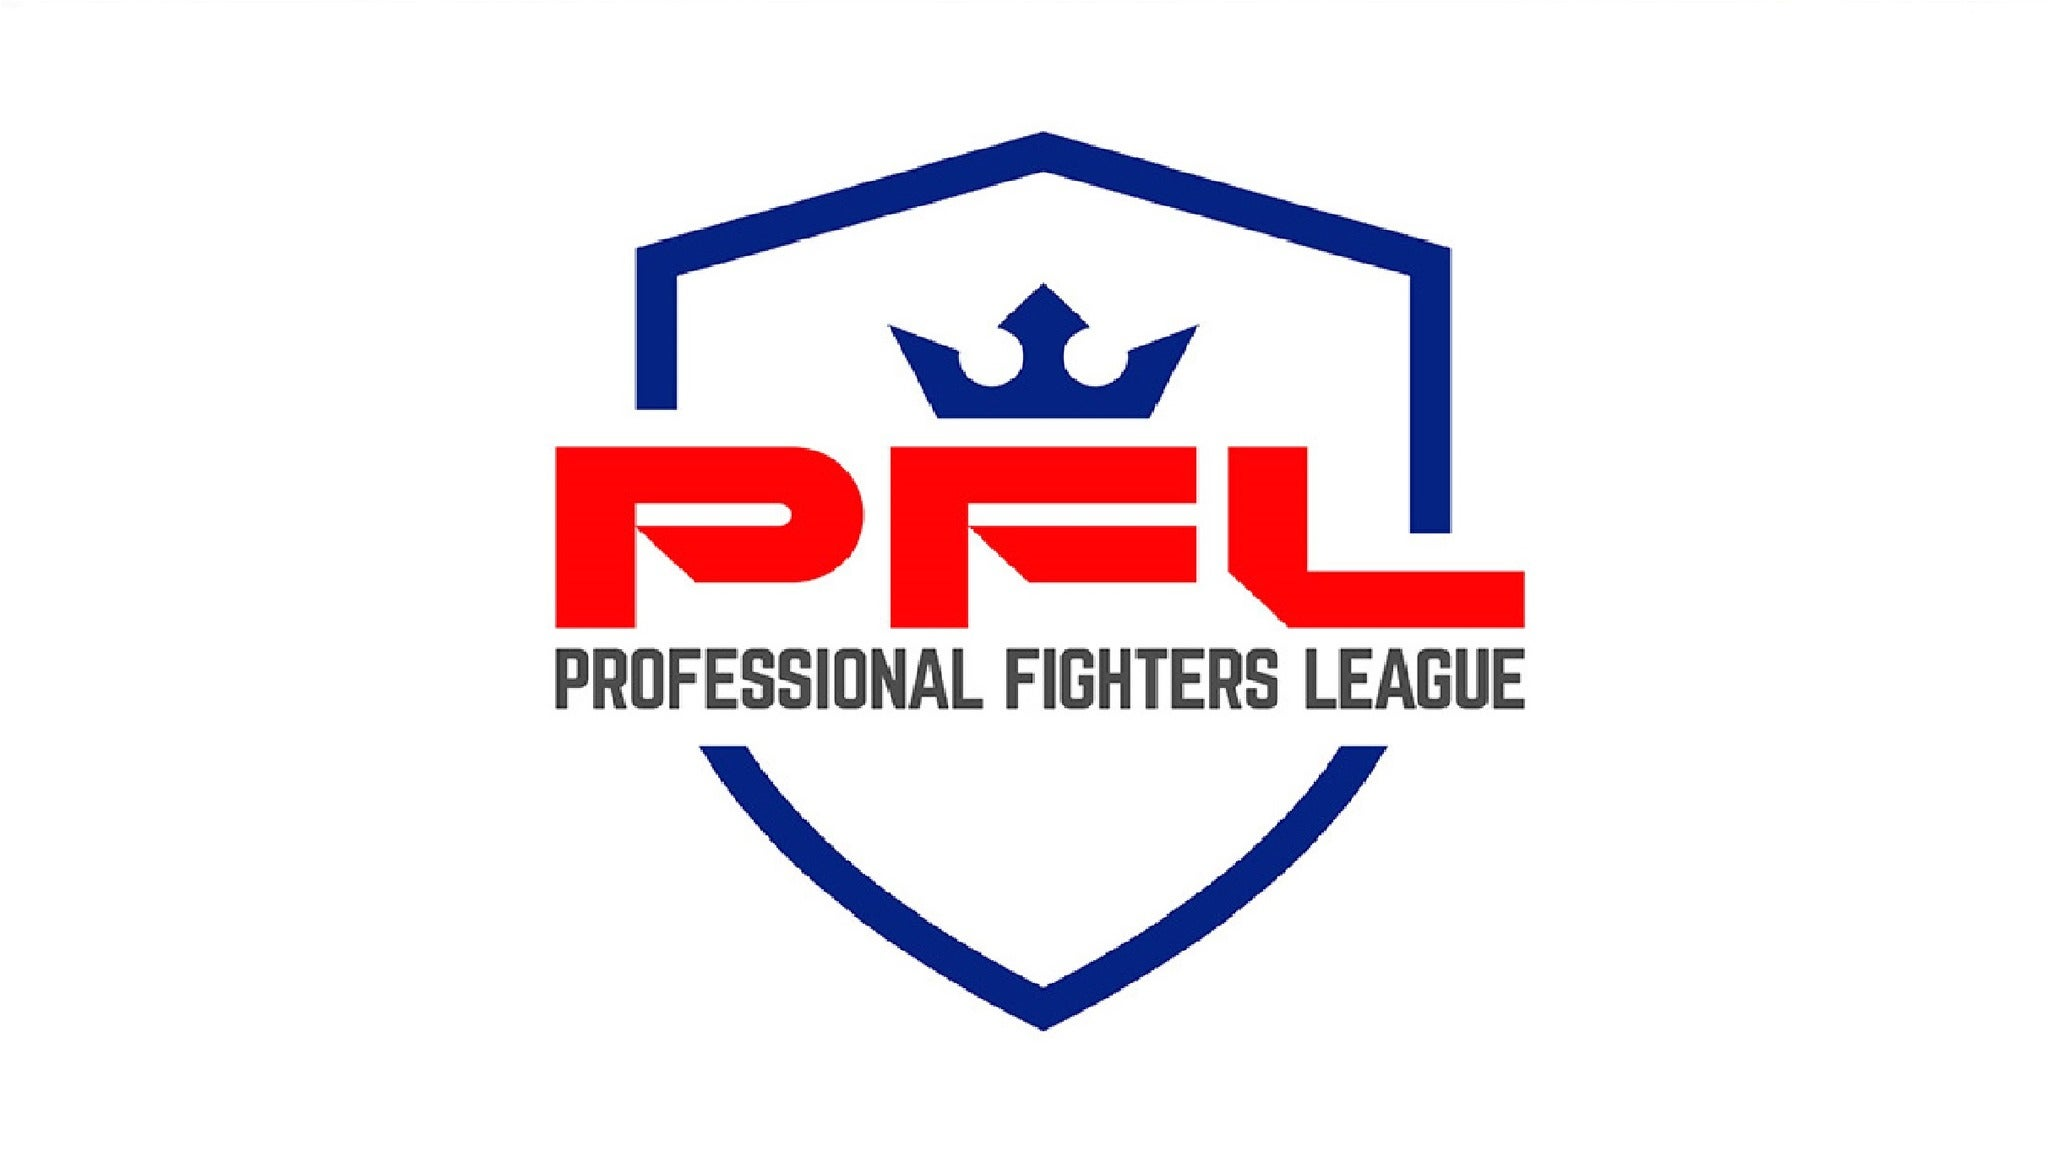 Professional Fighters League MMA: Featherweight and Lightweight